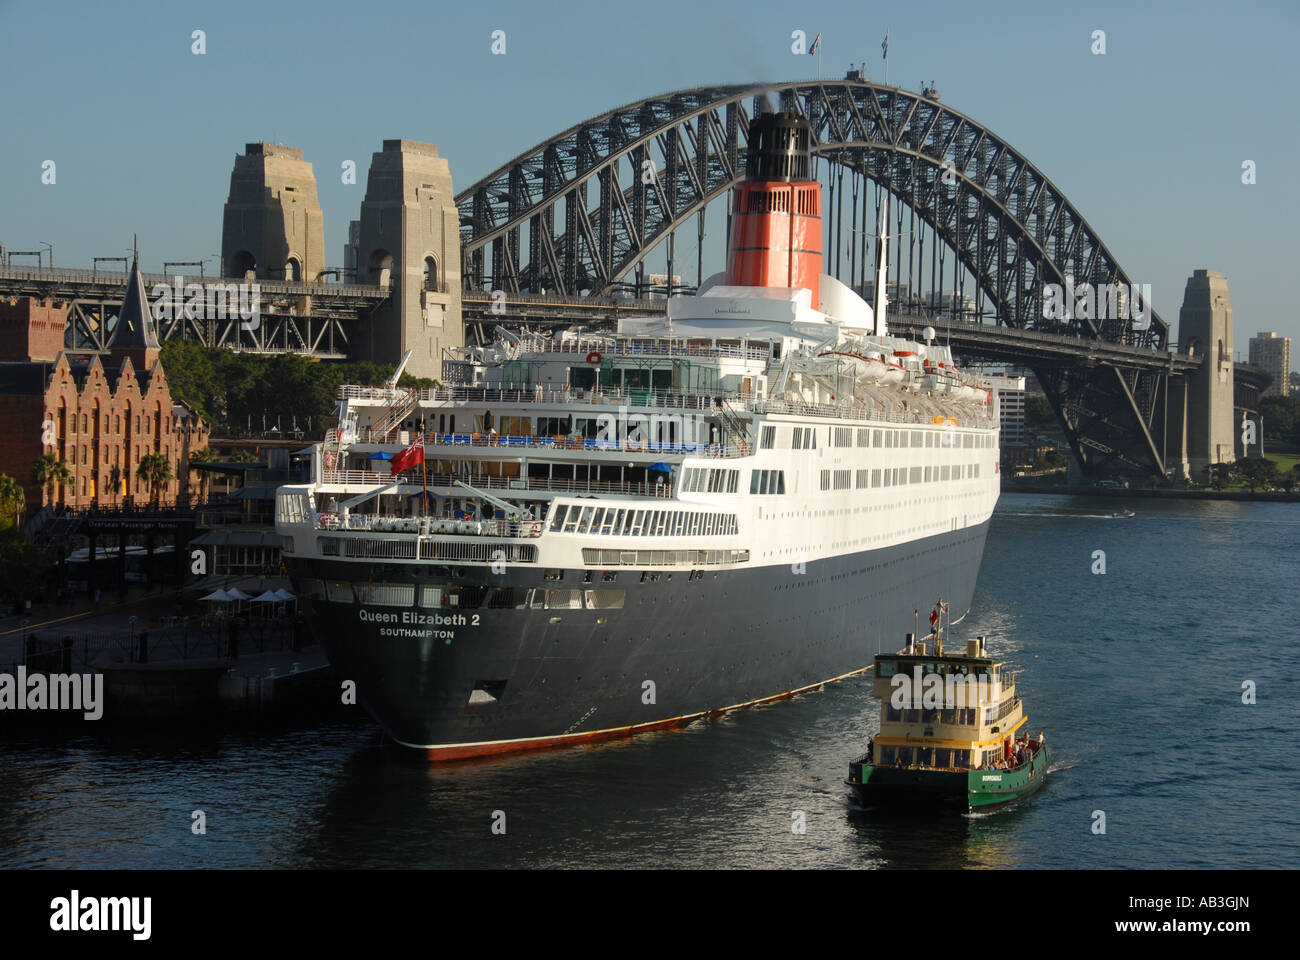 QE2 cruise ship in Sydney harbour - Stock Image